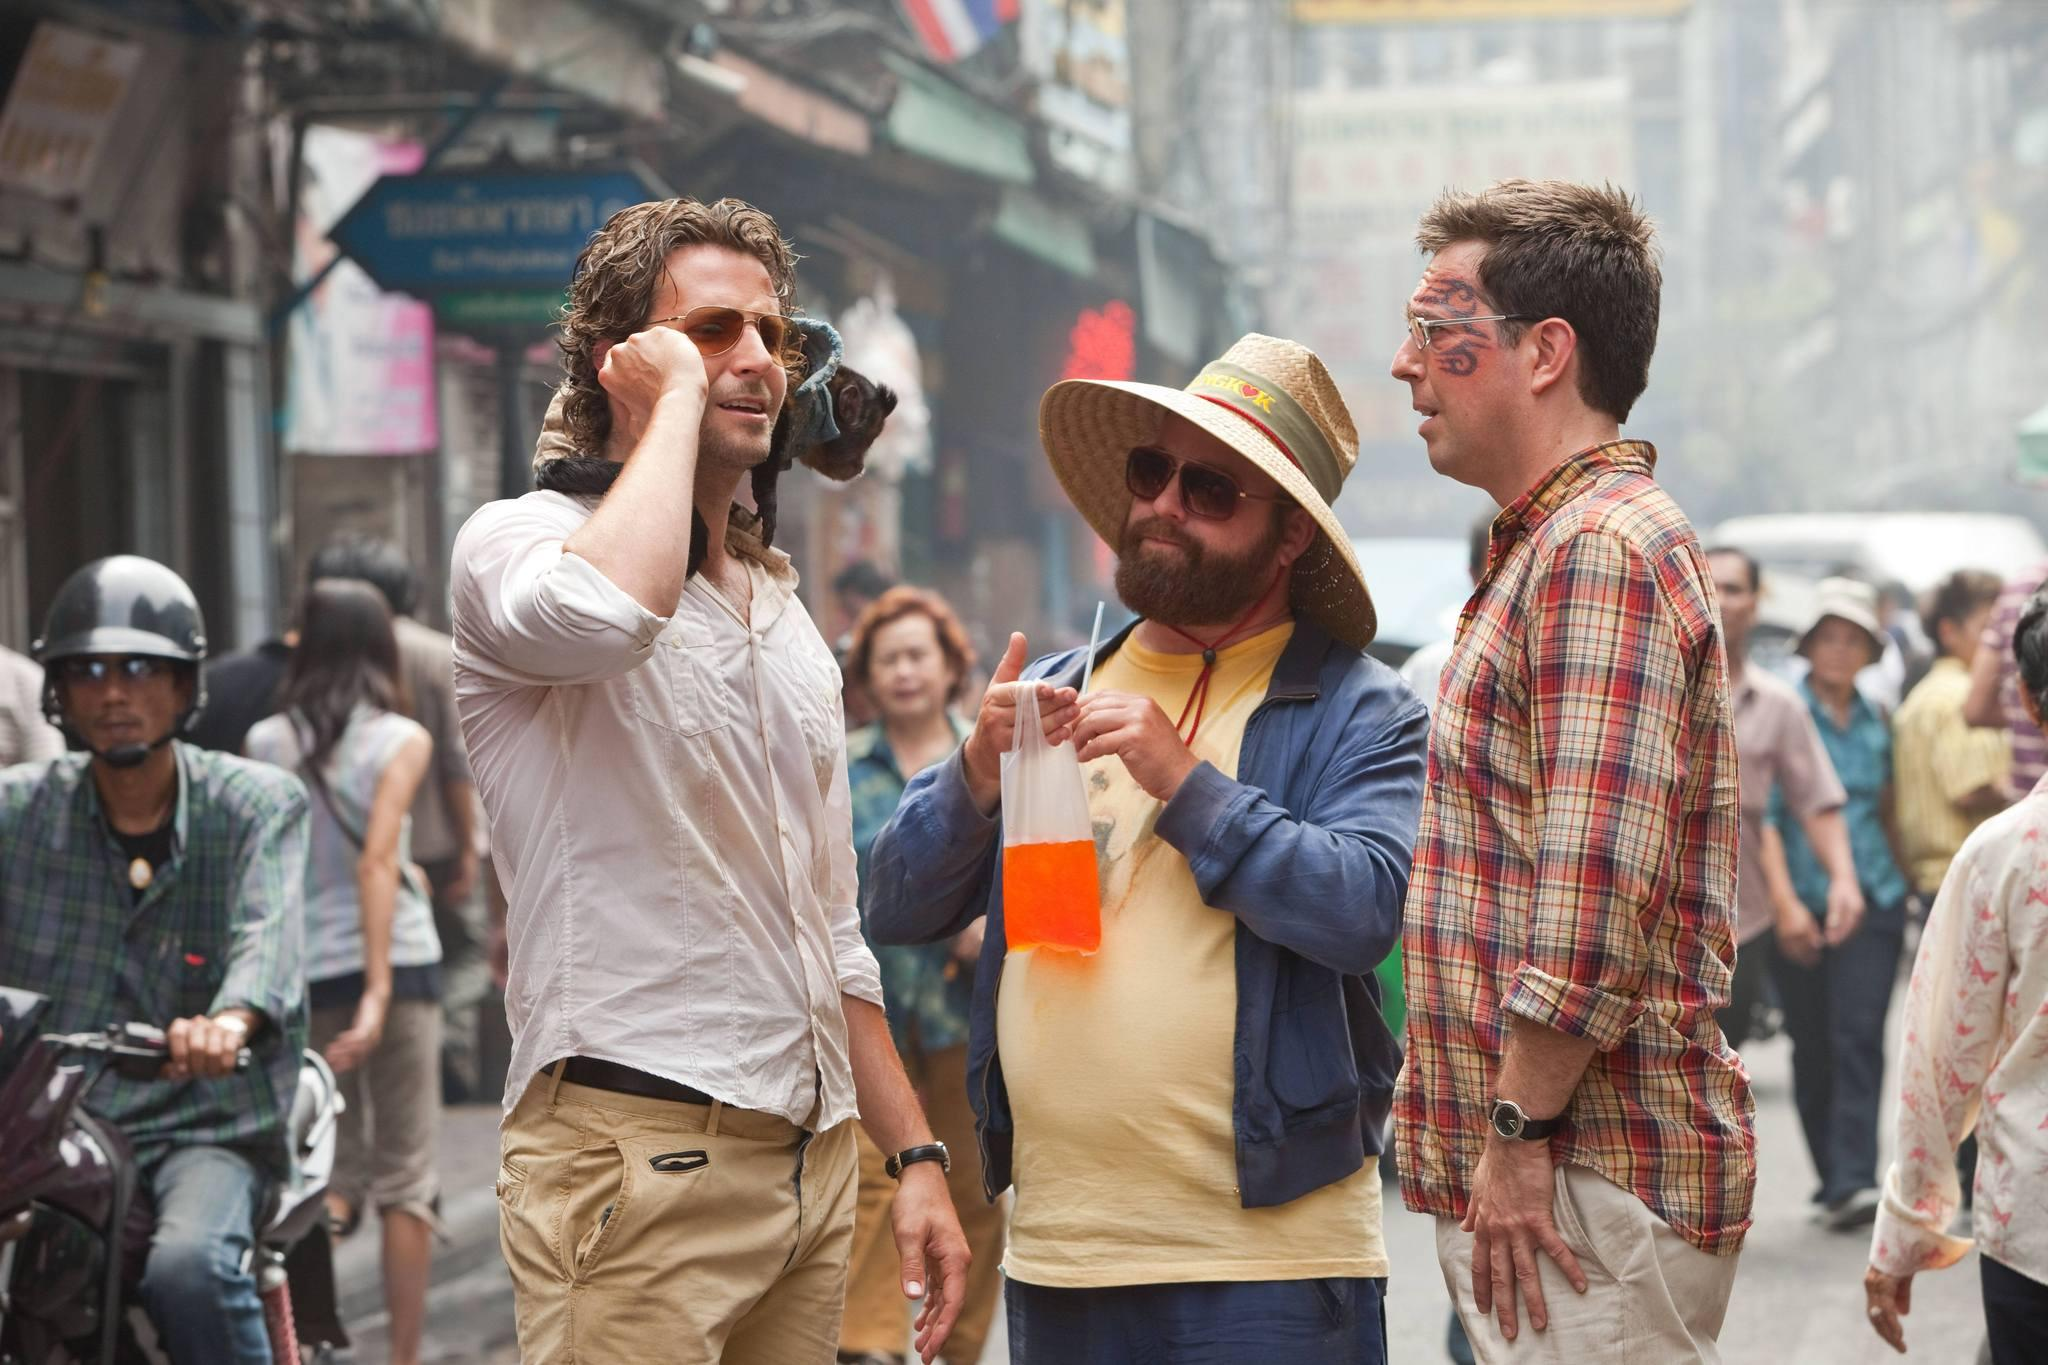 still-of-bradley-cooper,-zach-galifianakis,-ed-helms-and-crystal-the-monkey-in-the-hangover-part-ii-(2011)-large-picture